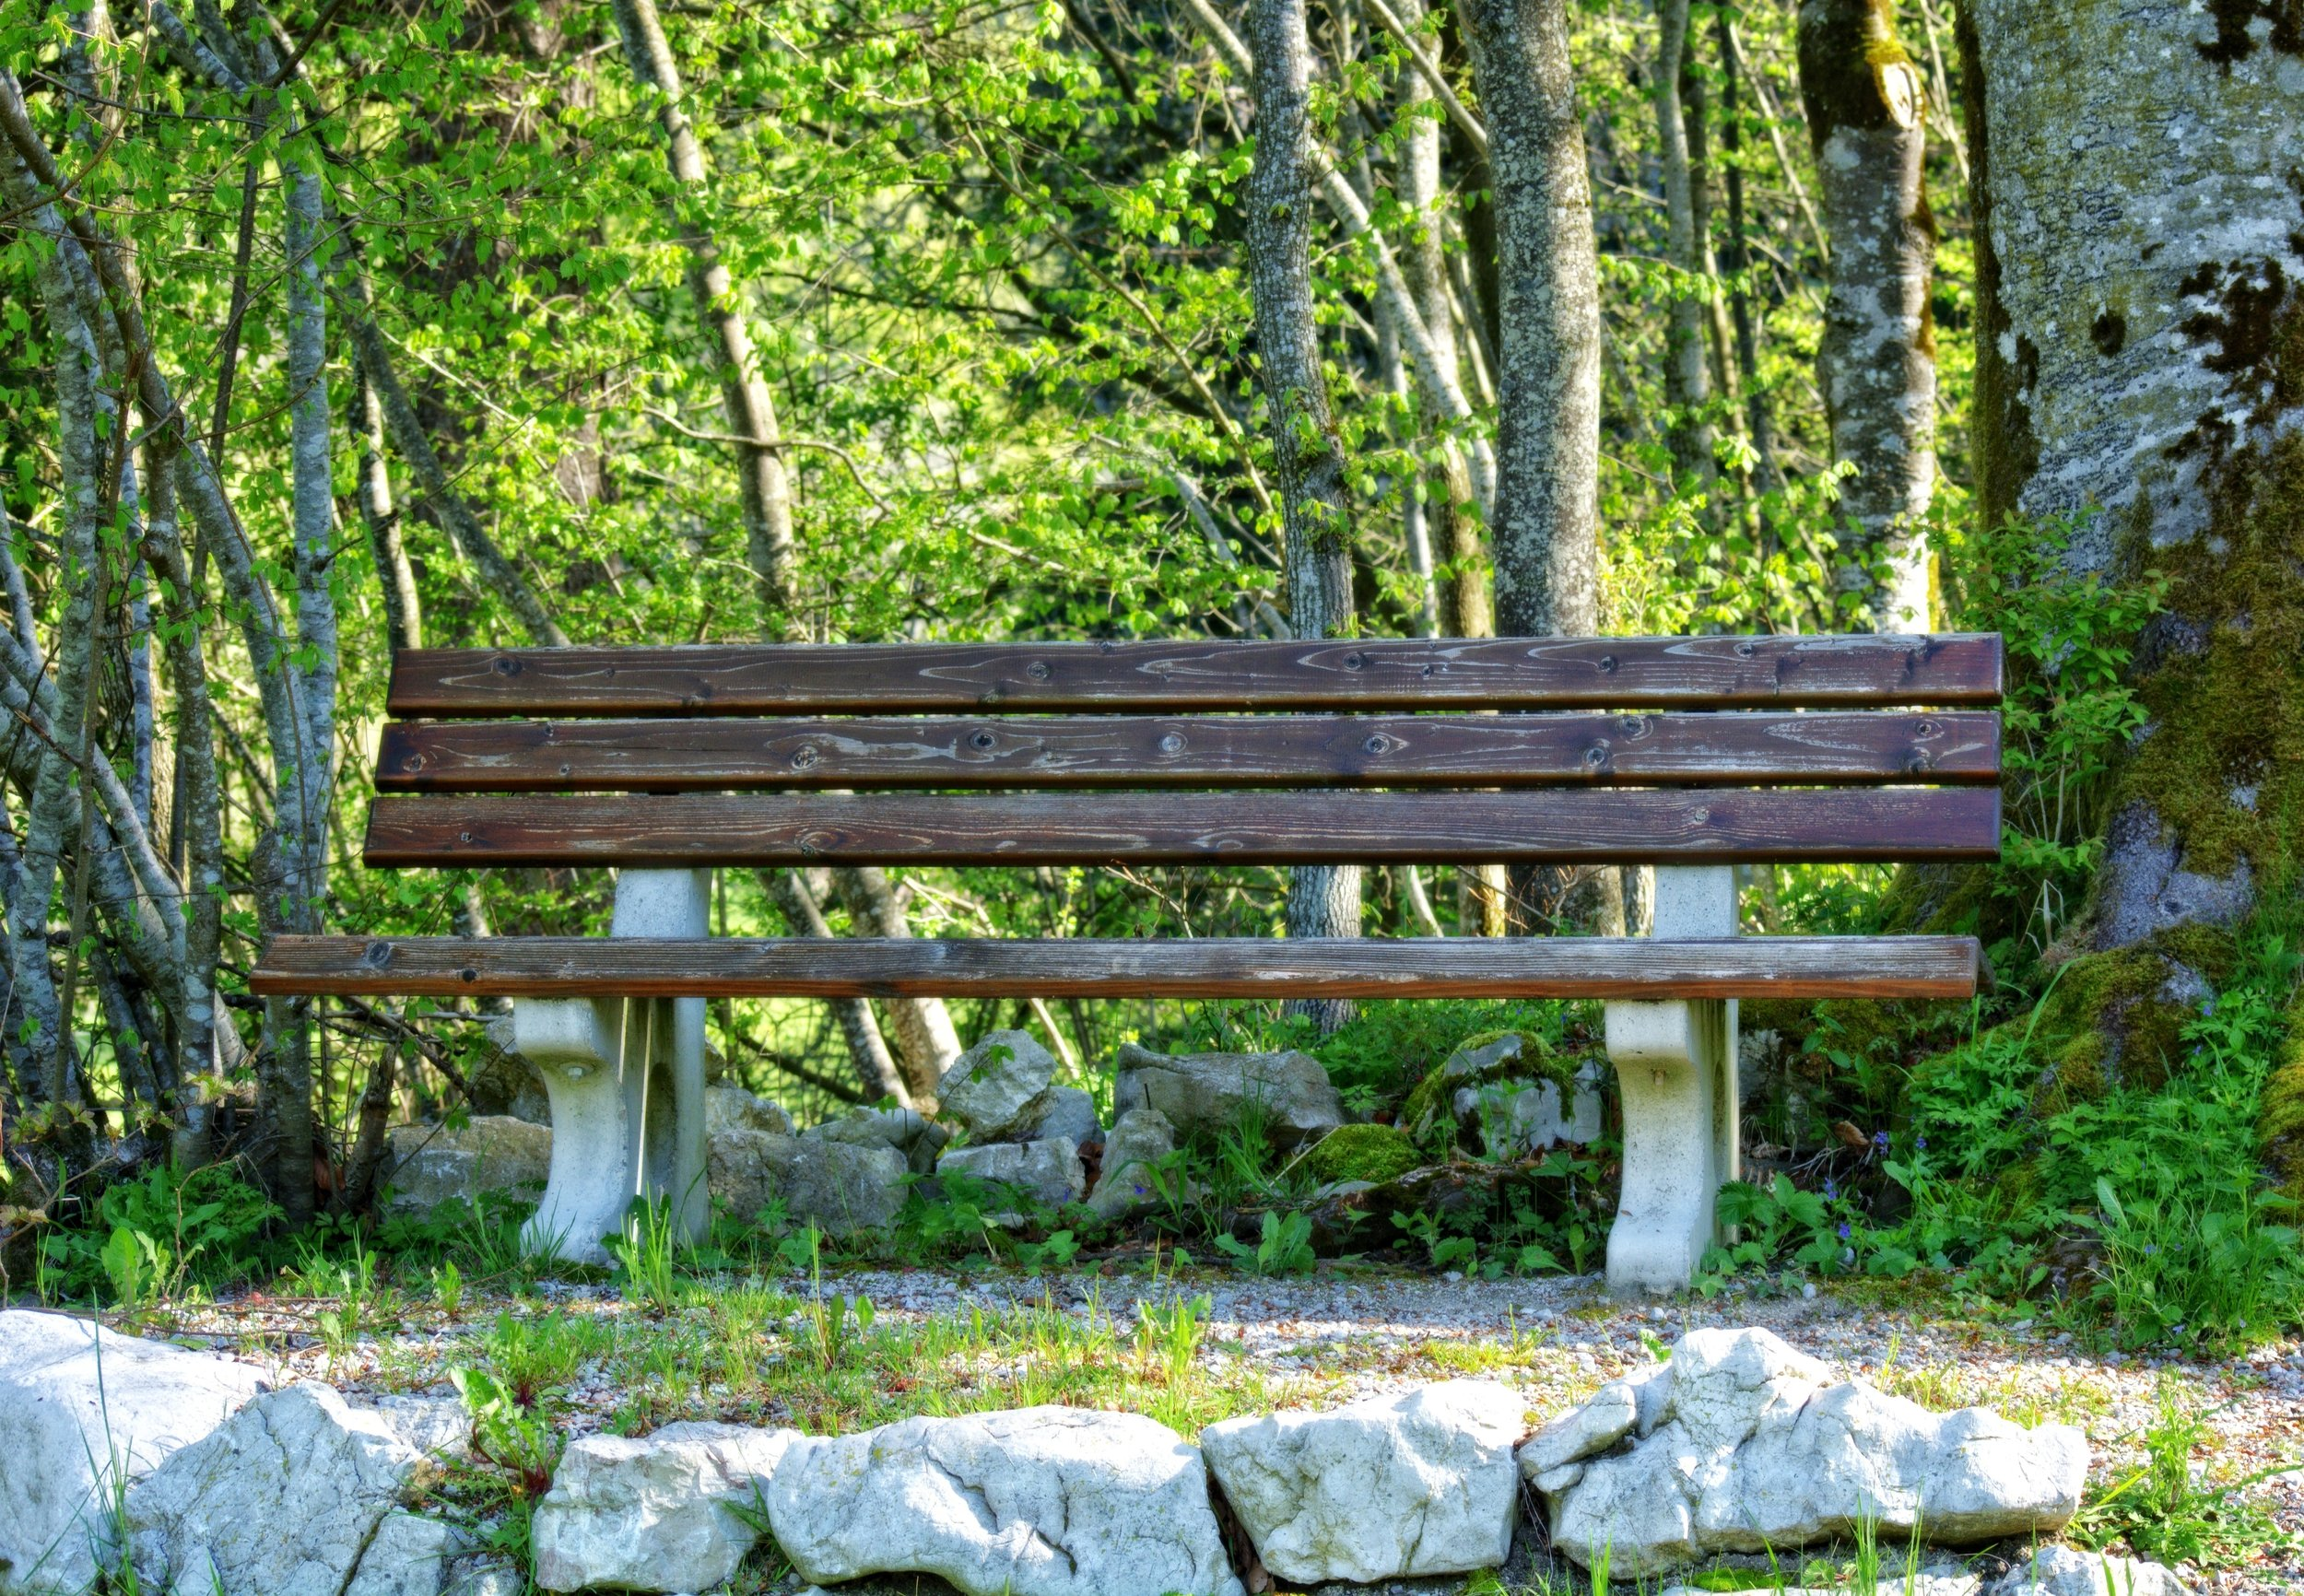 adventure-bench-daylight-257408.jpg